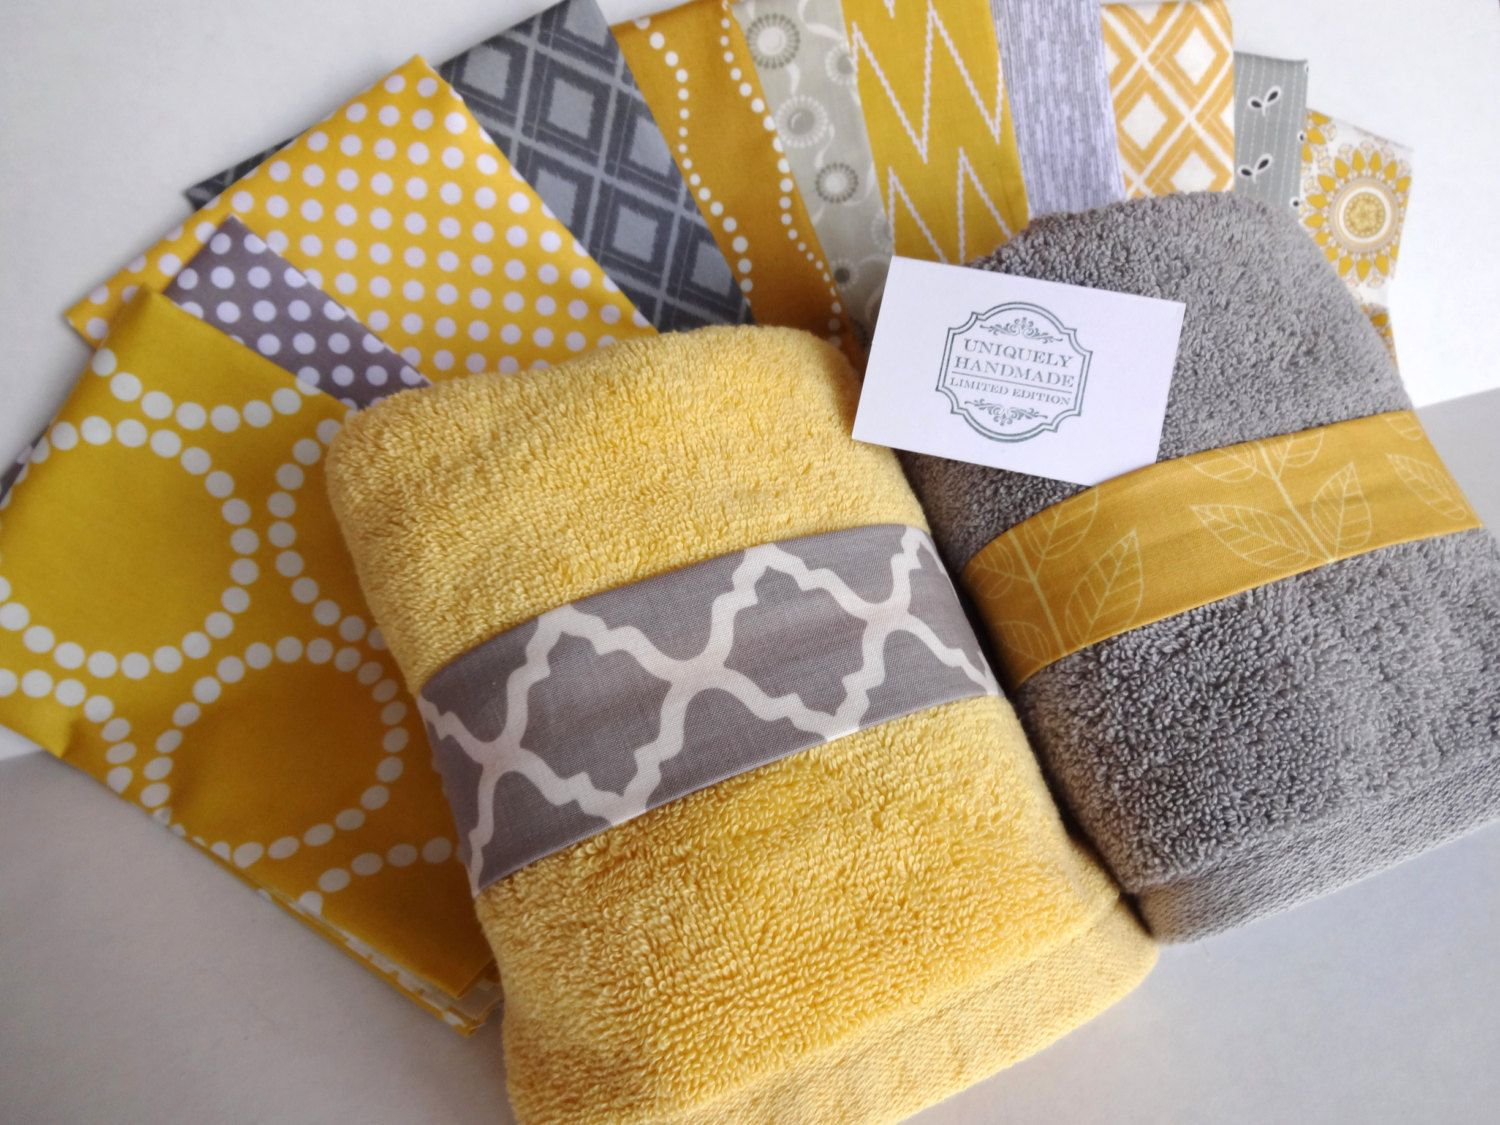 A Picture From The Gallery Yellow Bathroom Accessories To - Paper bathroom guest towels for bathroom decor ideas